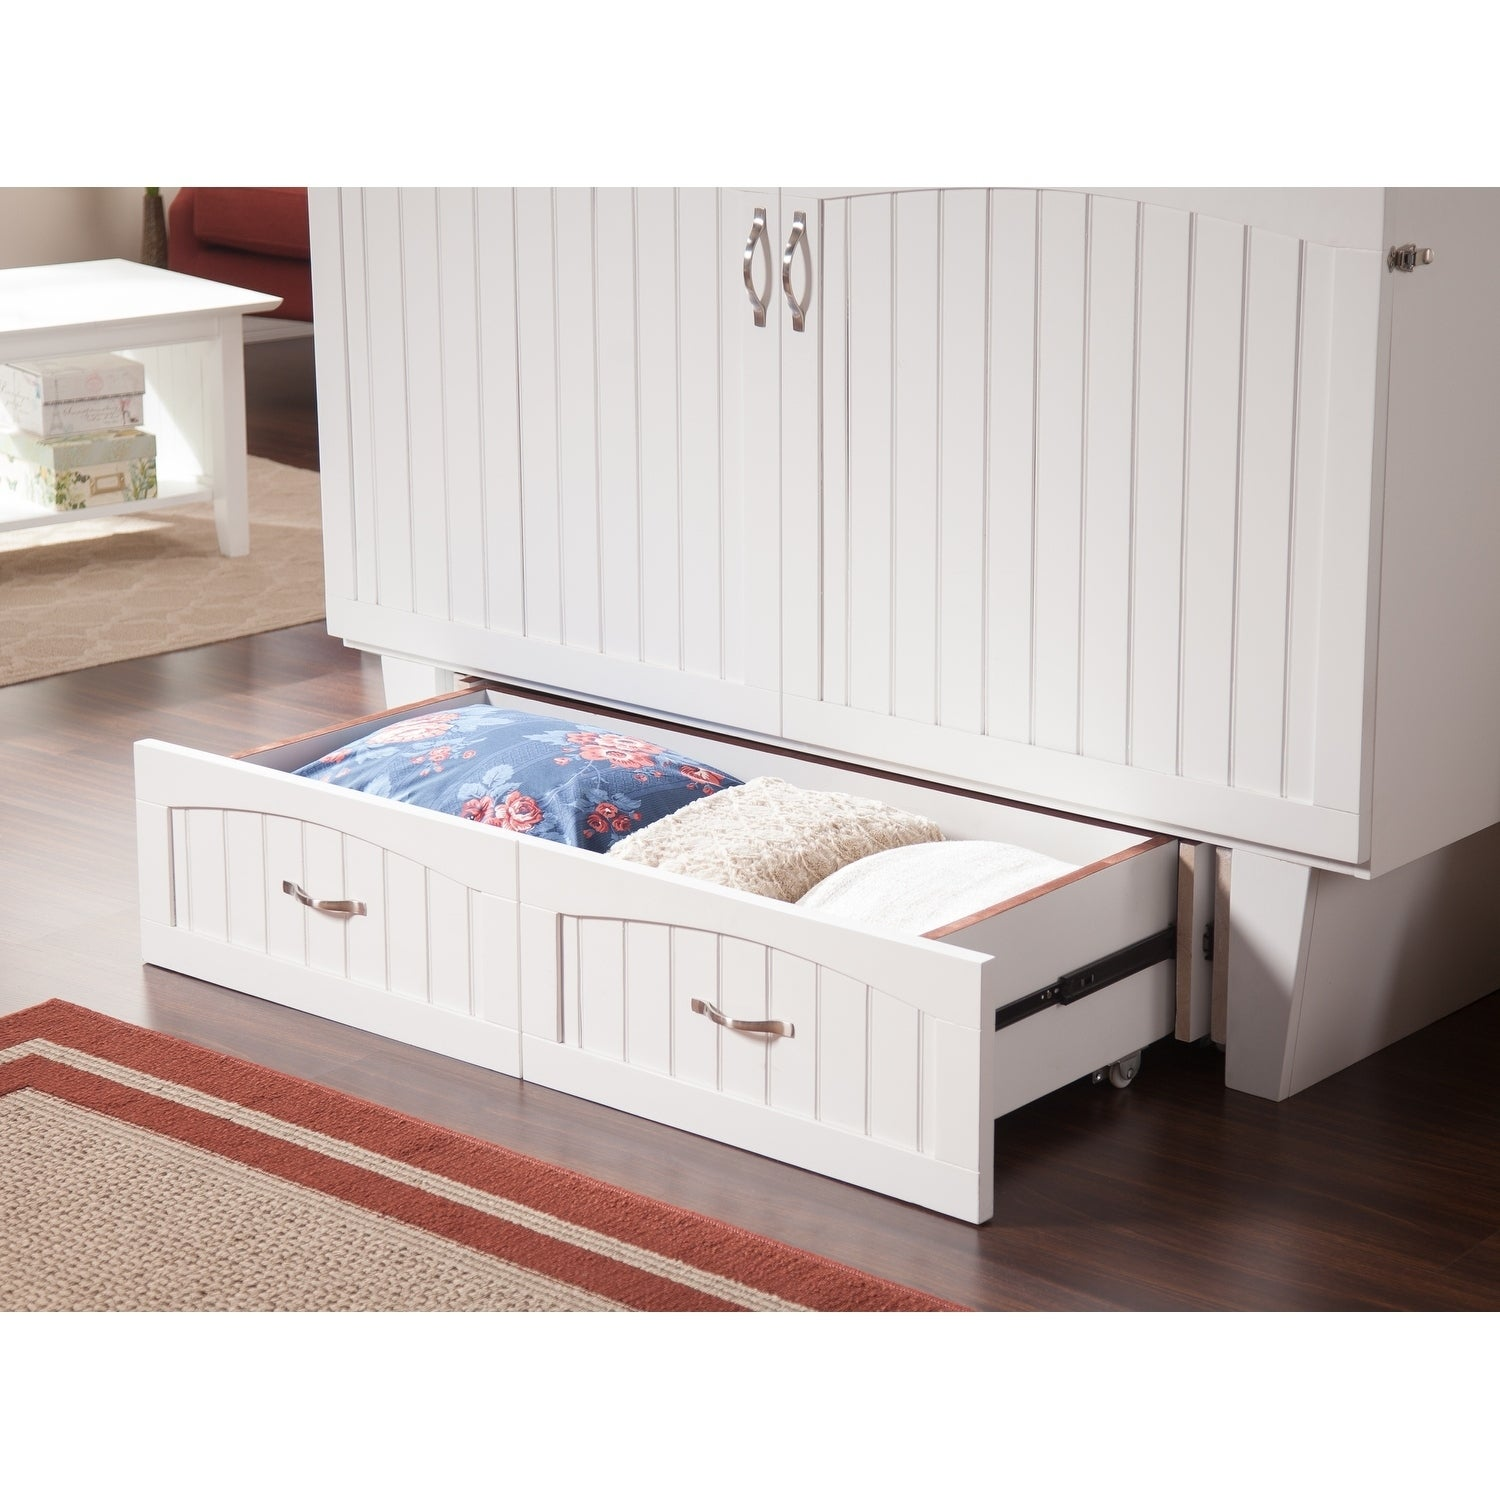 folding queen prev opening product furniture murphy horizontal hover expand bed